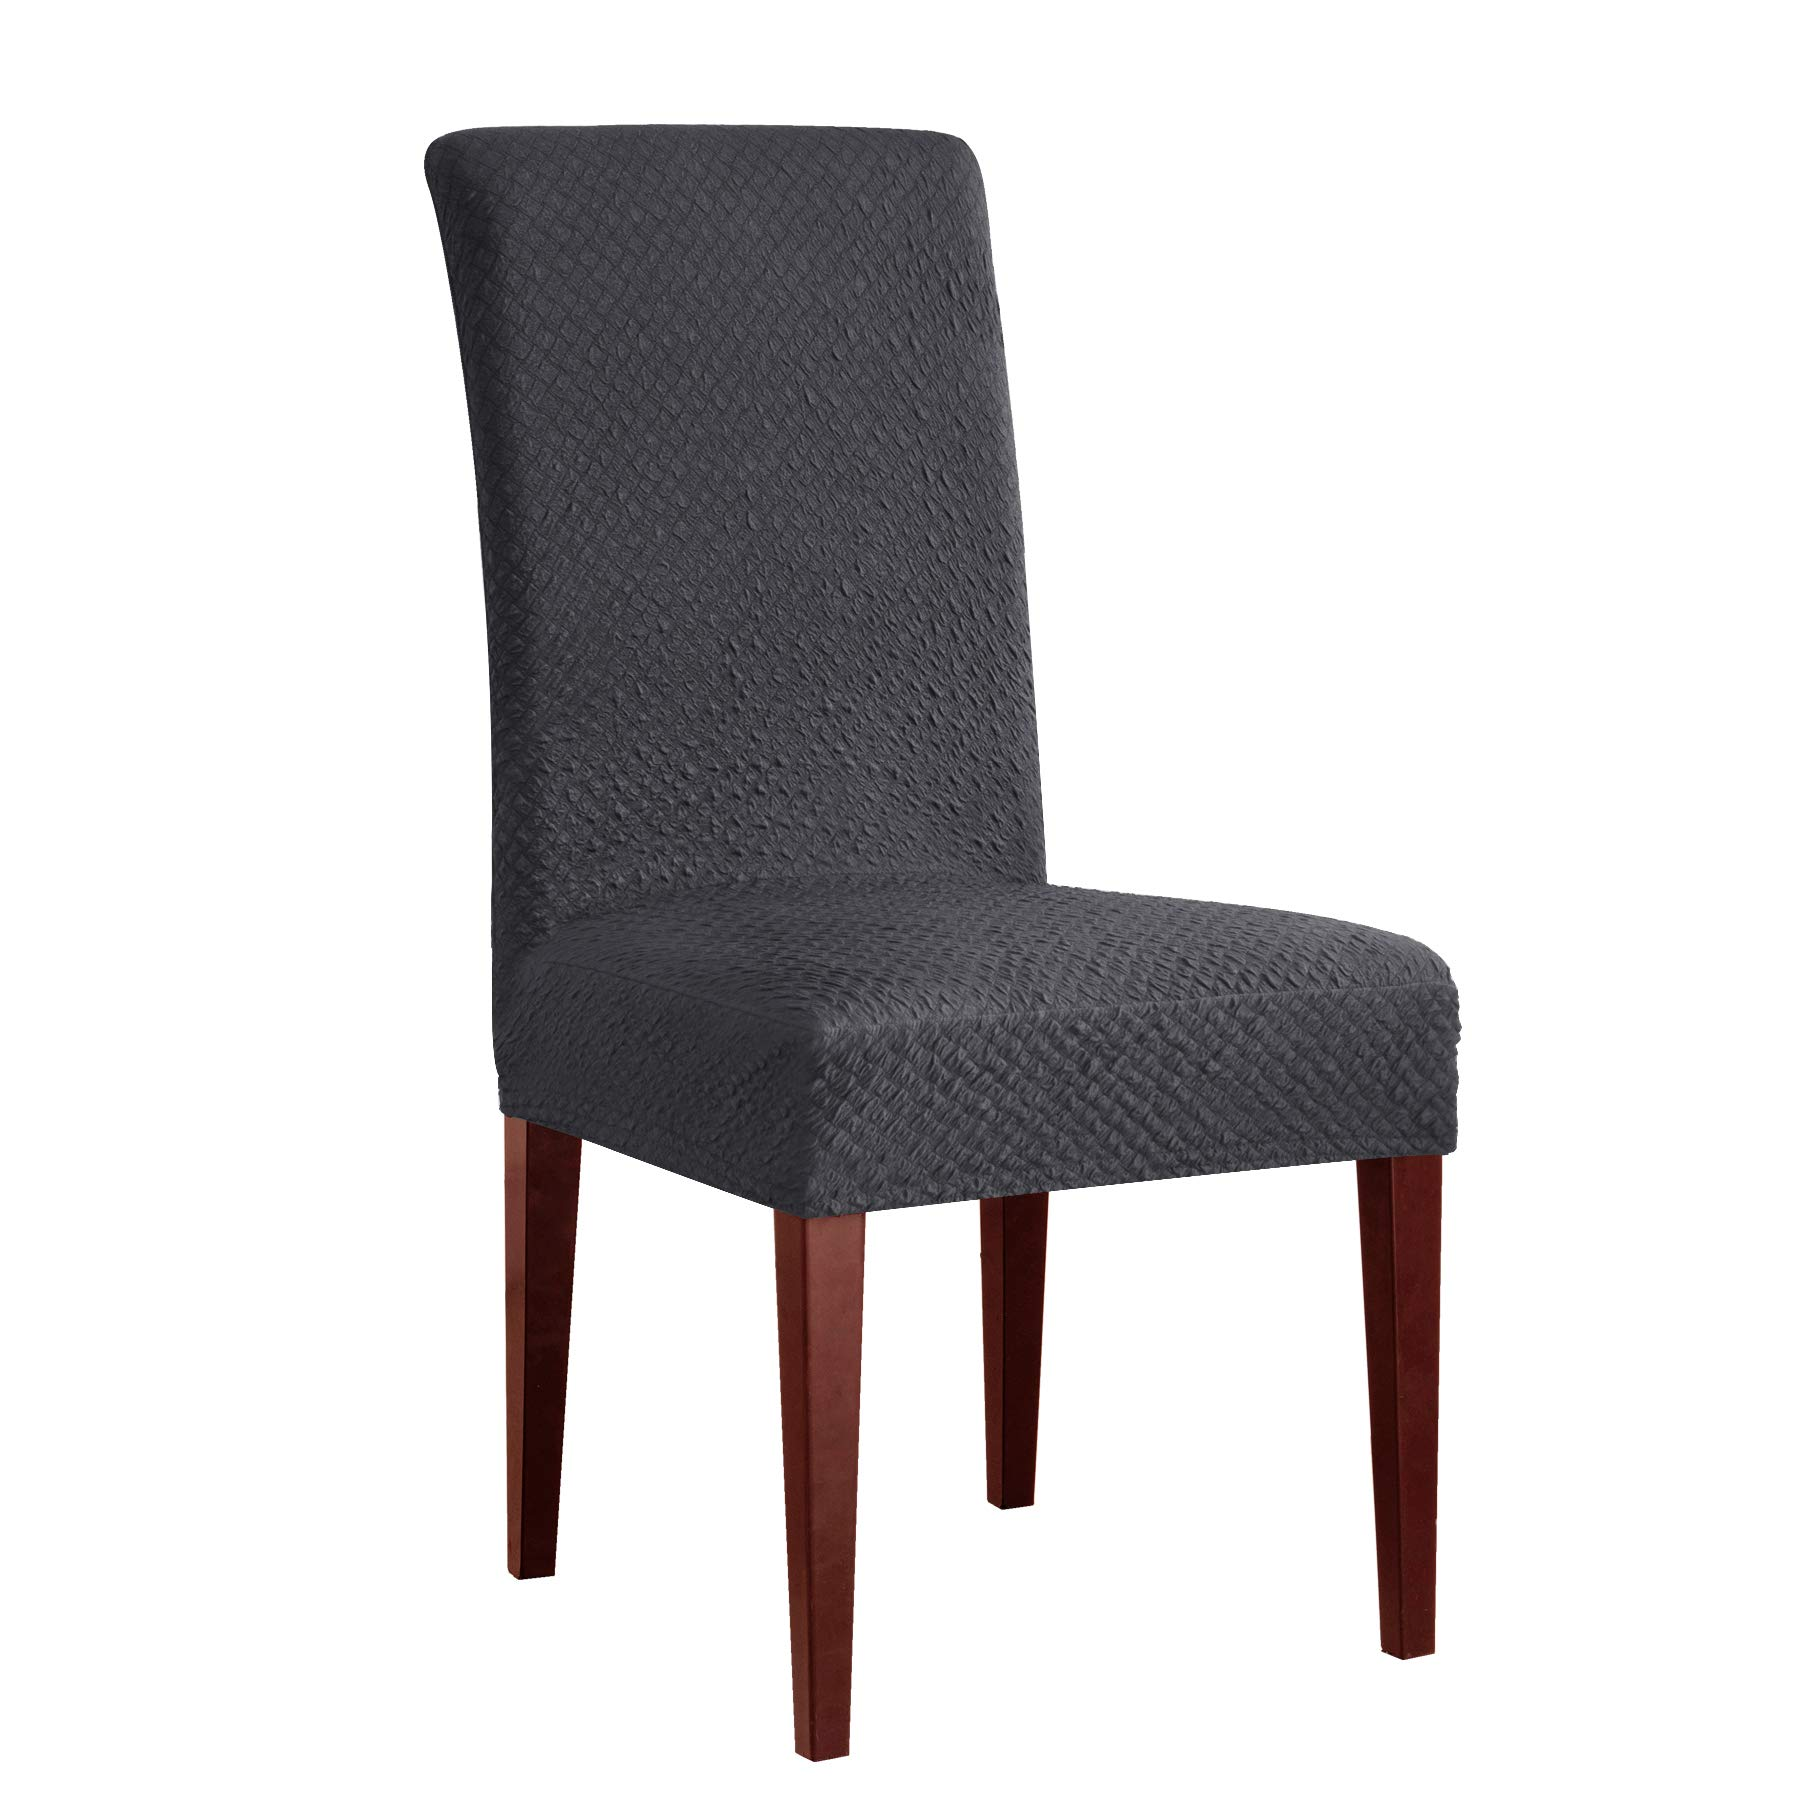 CHUN YI Seersucker Jacquard Polyester Spandex Fabric Stretch Dining Chair Slipcovers Furniture Covers/Protector (2 Pcs, Gray)